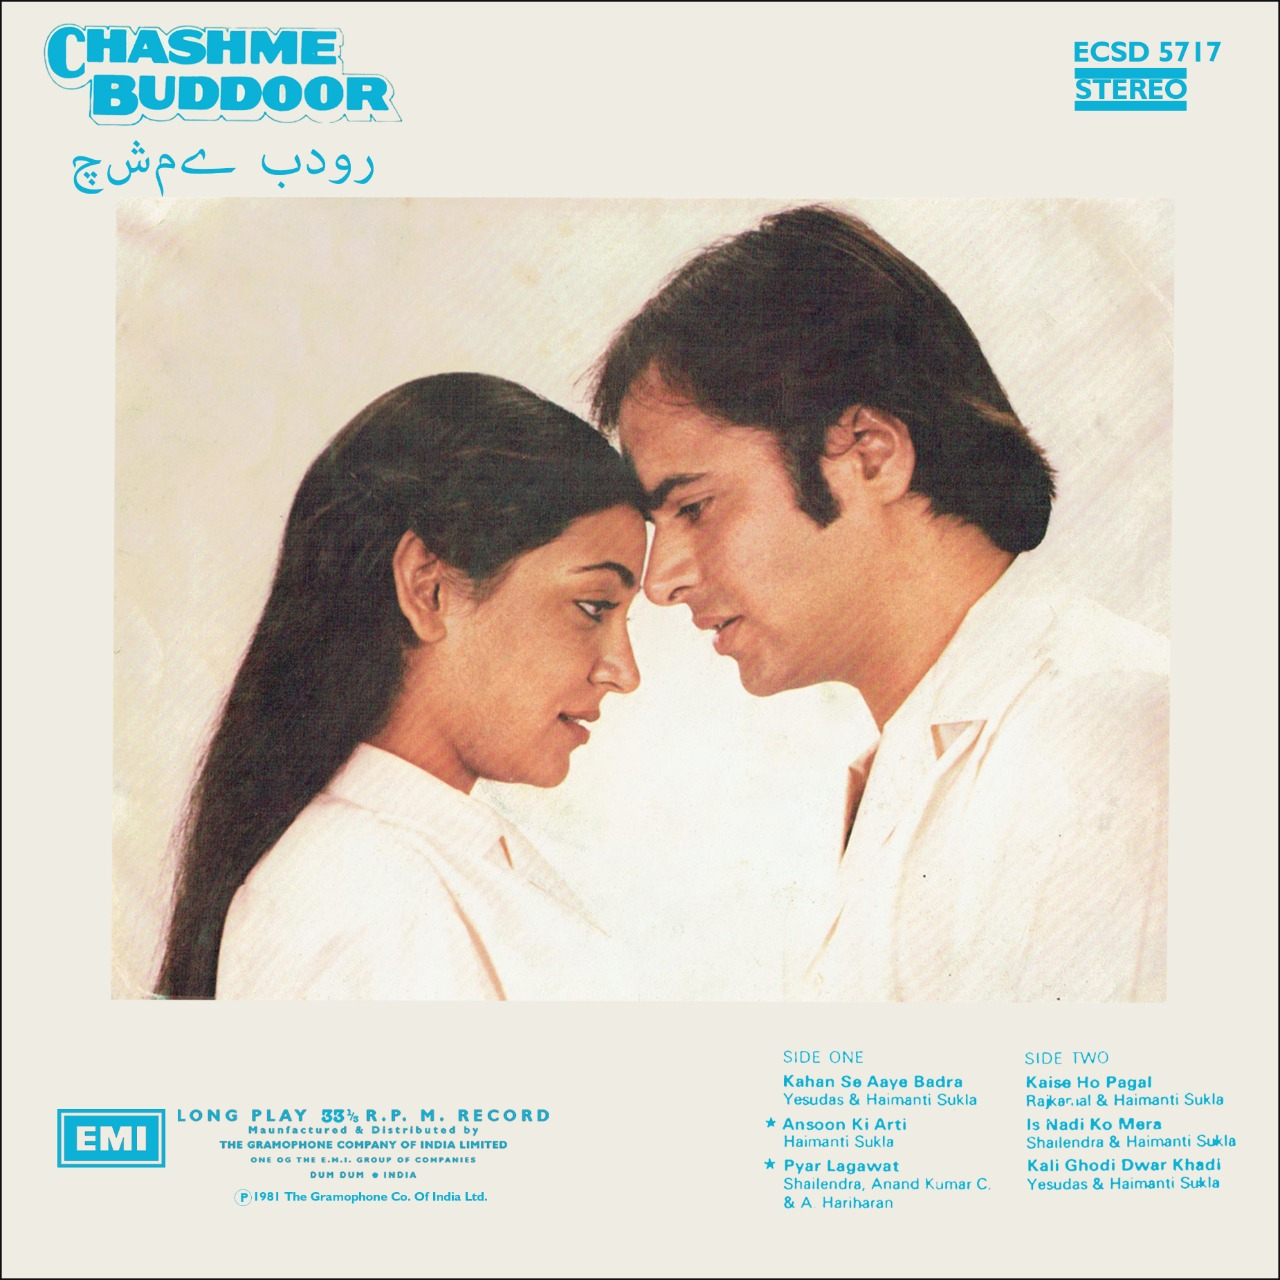 Chashme Buddoor - ECSD 5717 - (Condition - 85-90%) - Cover Good Condition - LP Record